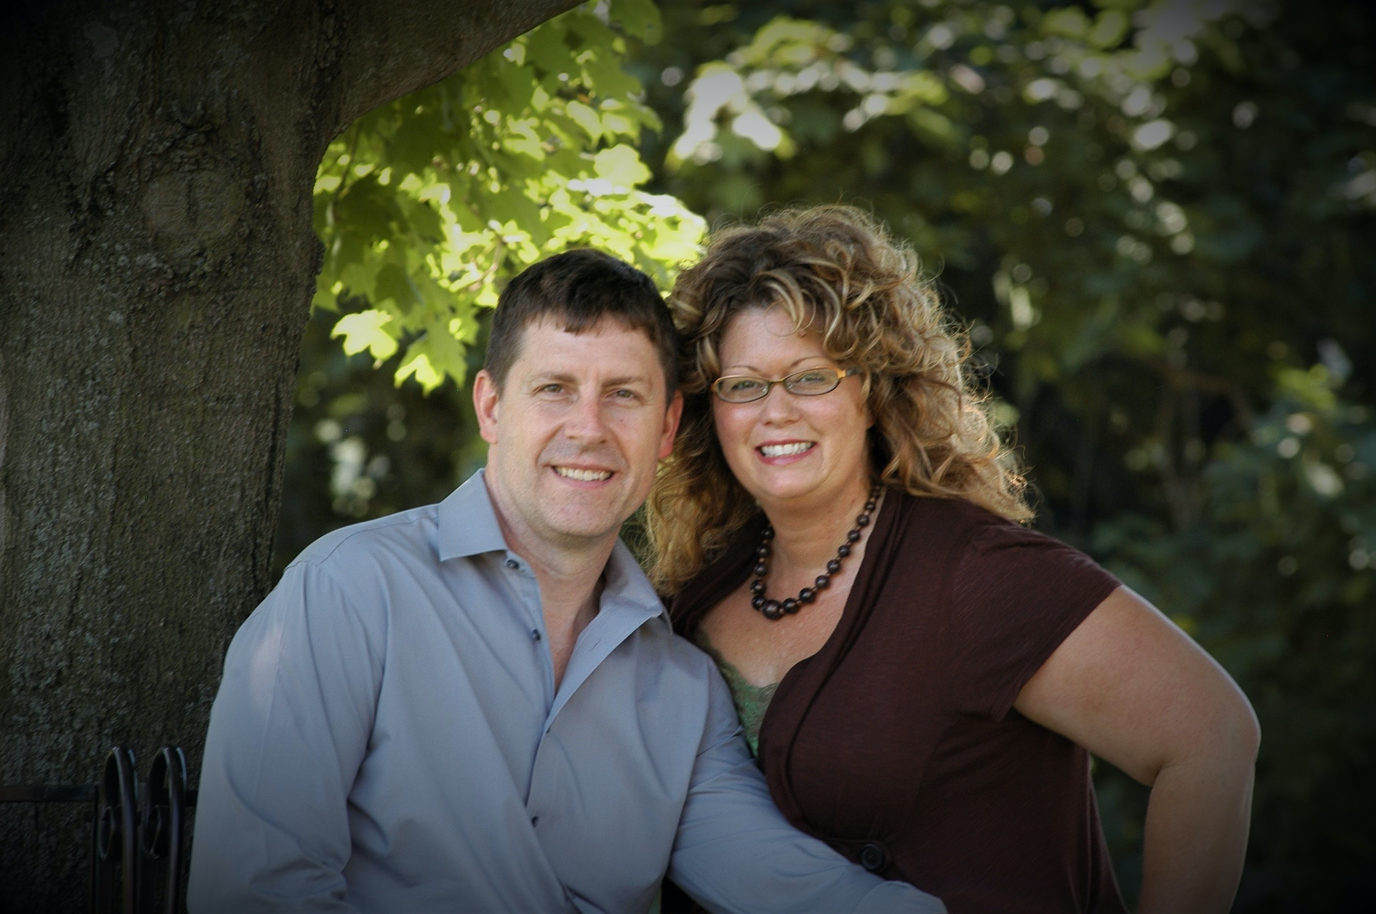 Professional portrait of couple outside under tree, light filtering through leaves in background.